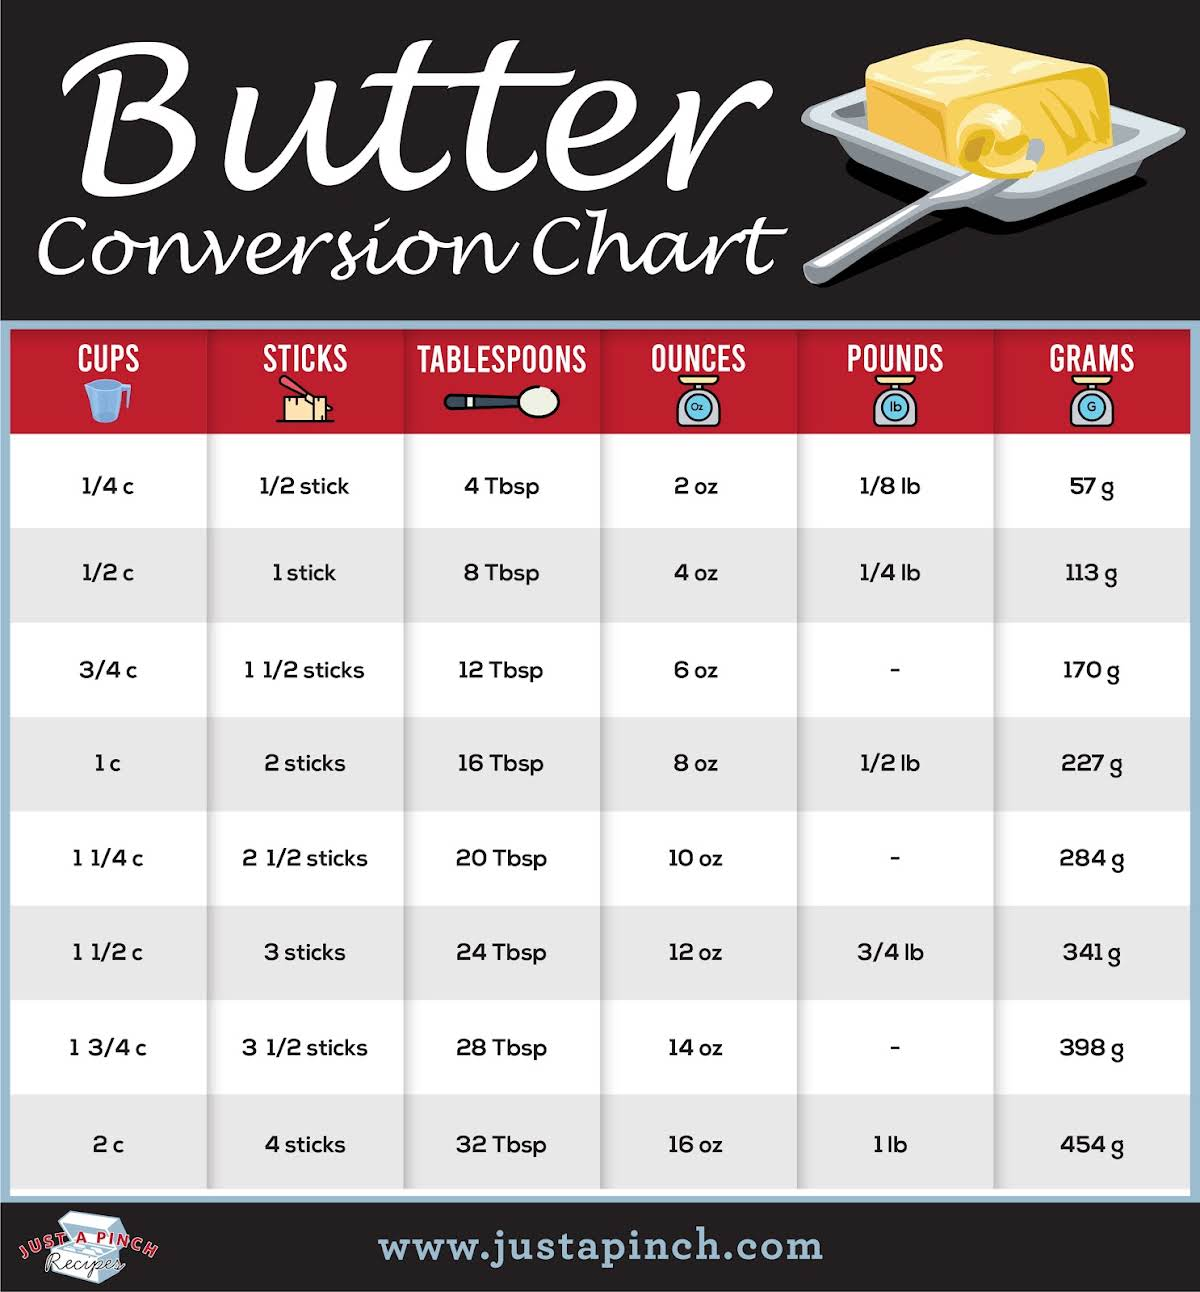 Butter Conversion Chart